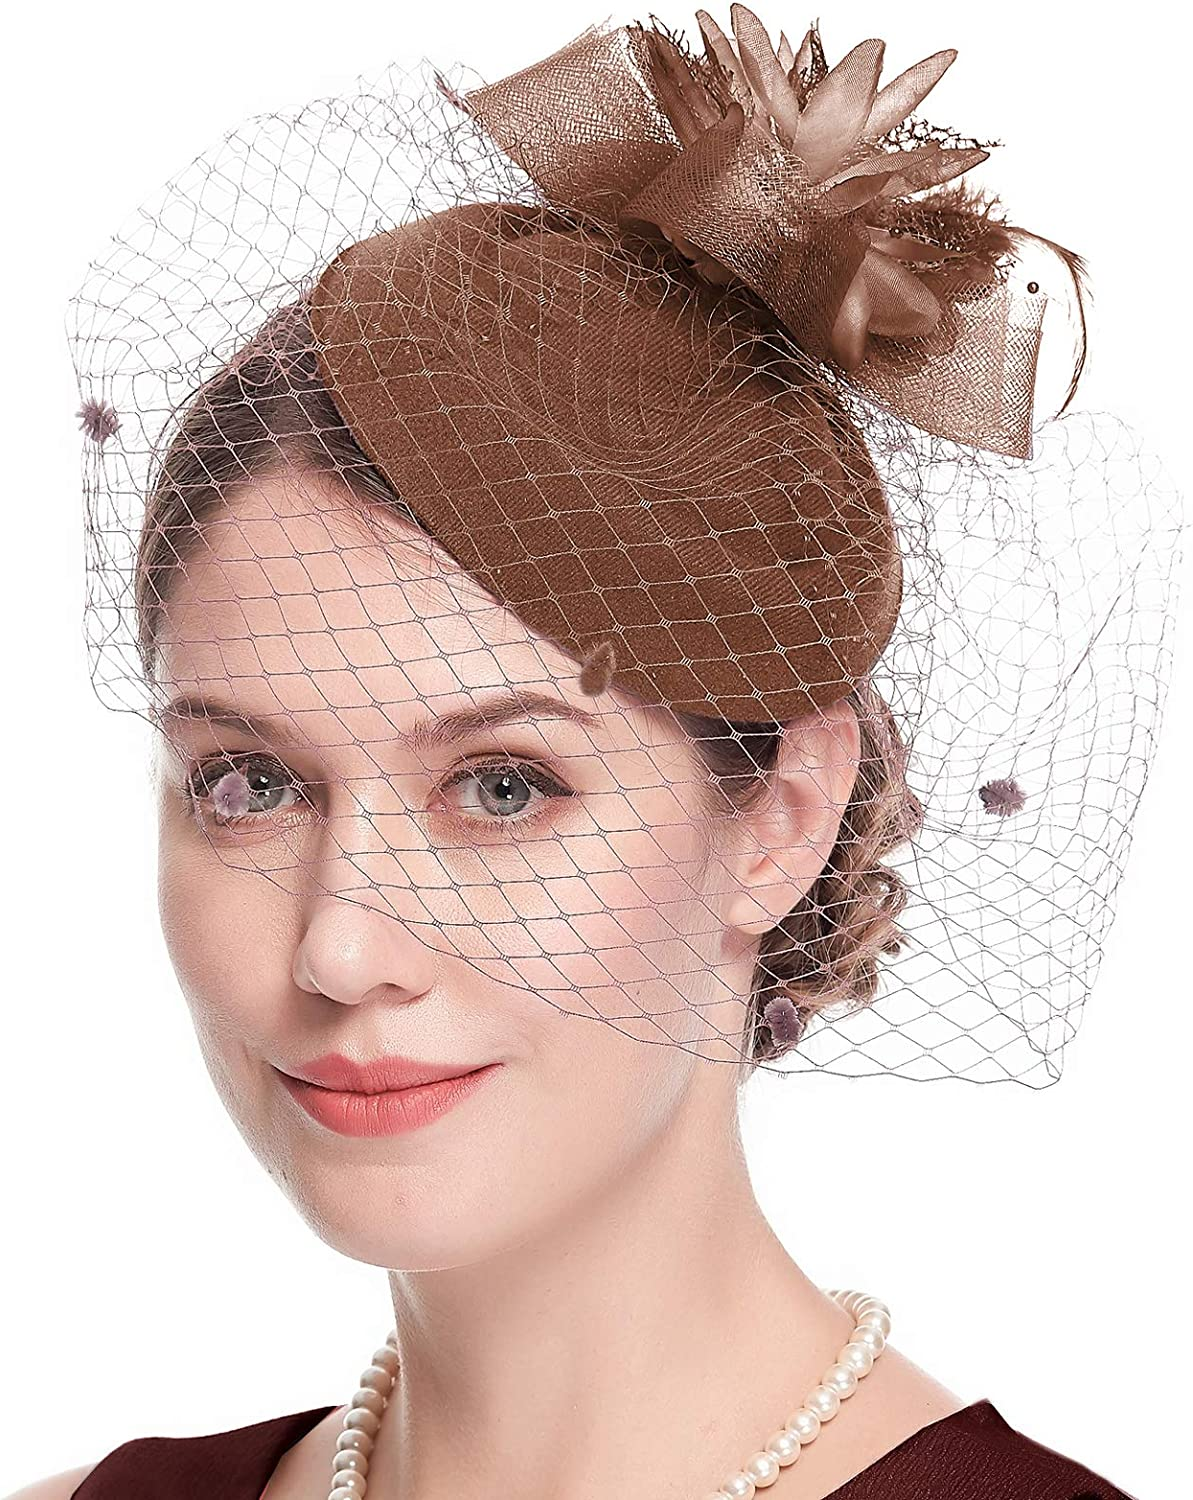 Max 79% OFF Cizoe Fascinator Hats for Women 20s 50s Pillbox Free shipping on posting reviews Hat Kent Vintage